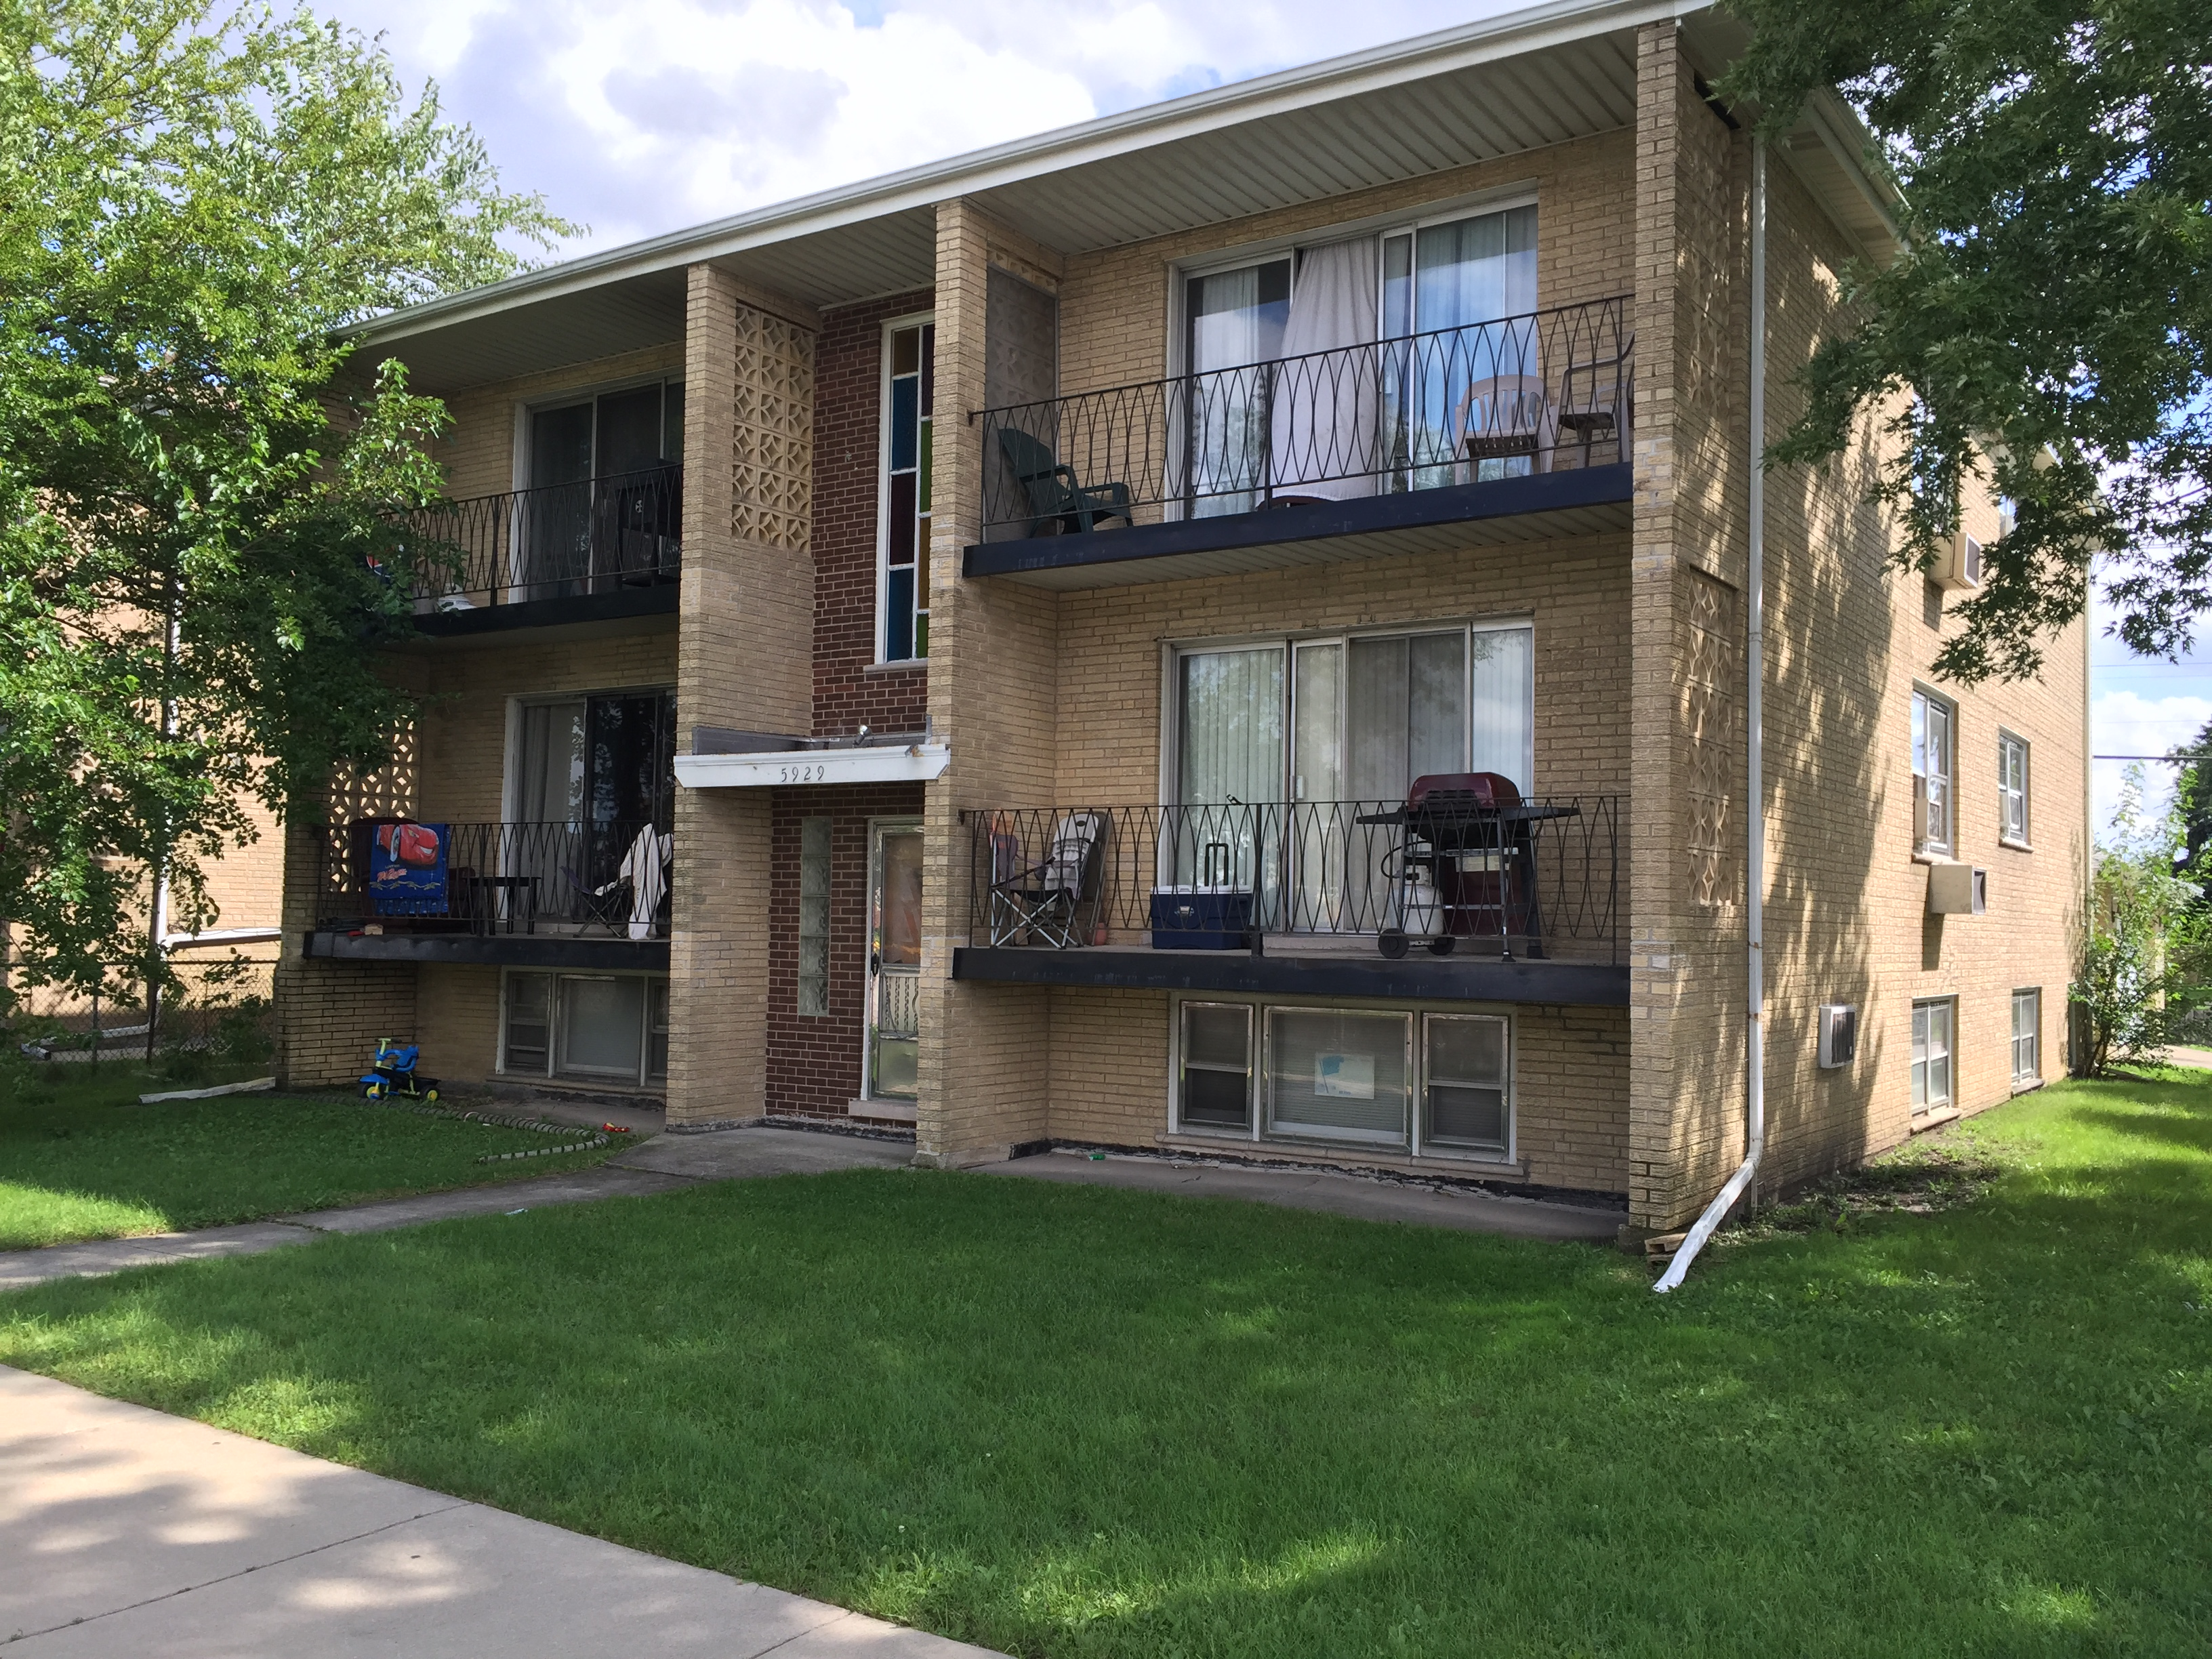 5929 W 79th St , Burbank, Illinois 60459 | 6 Unit Building